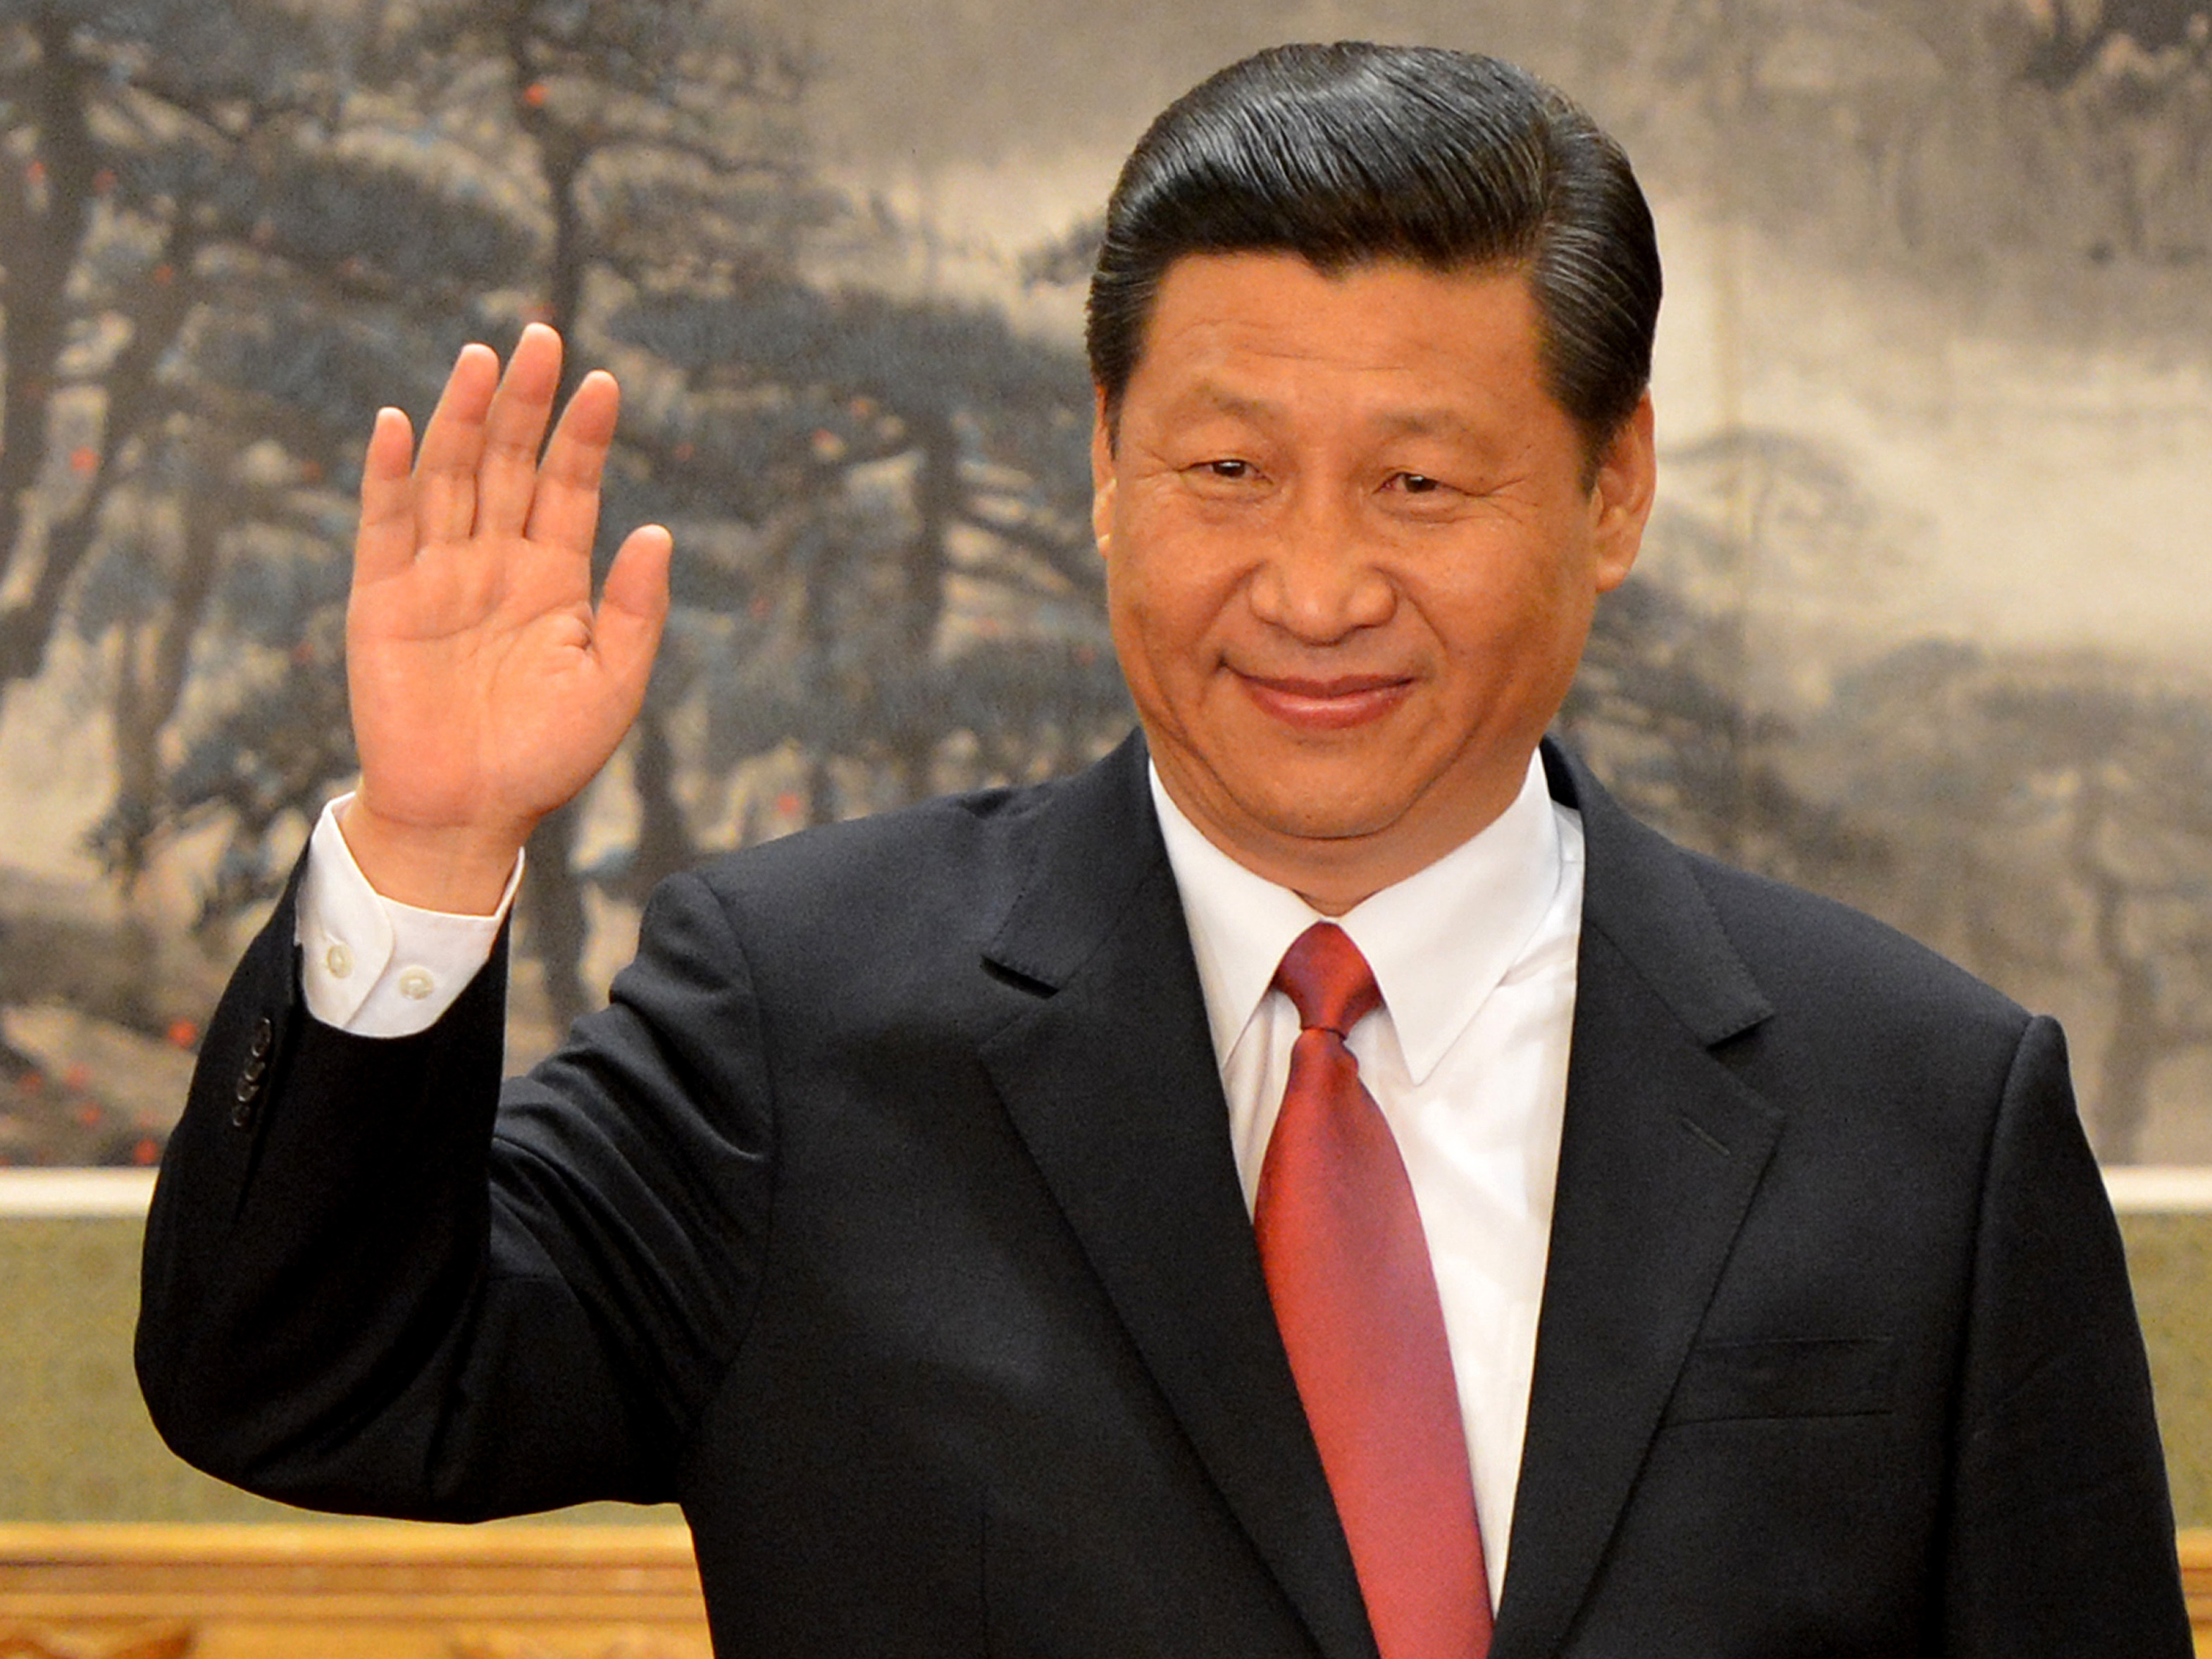 China s president xi jinping leading a major crackdown on china s human rights attorneys